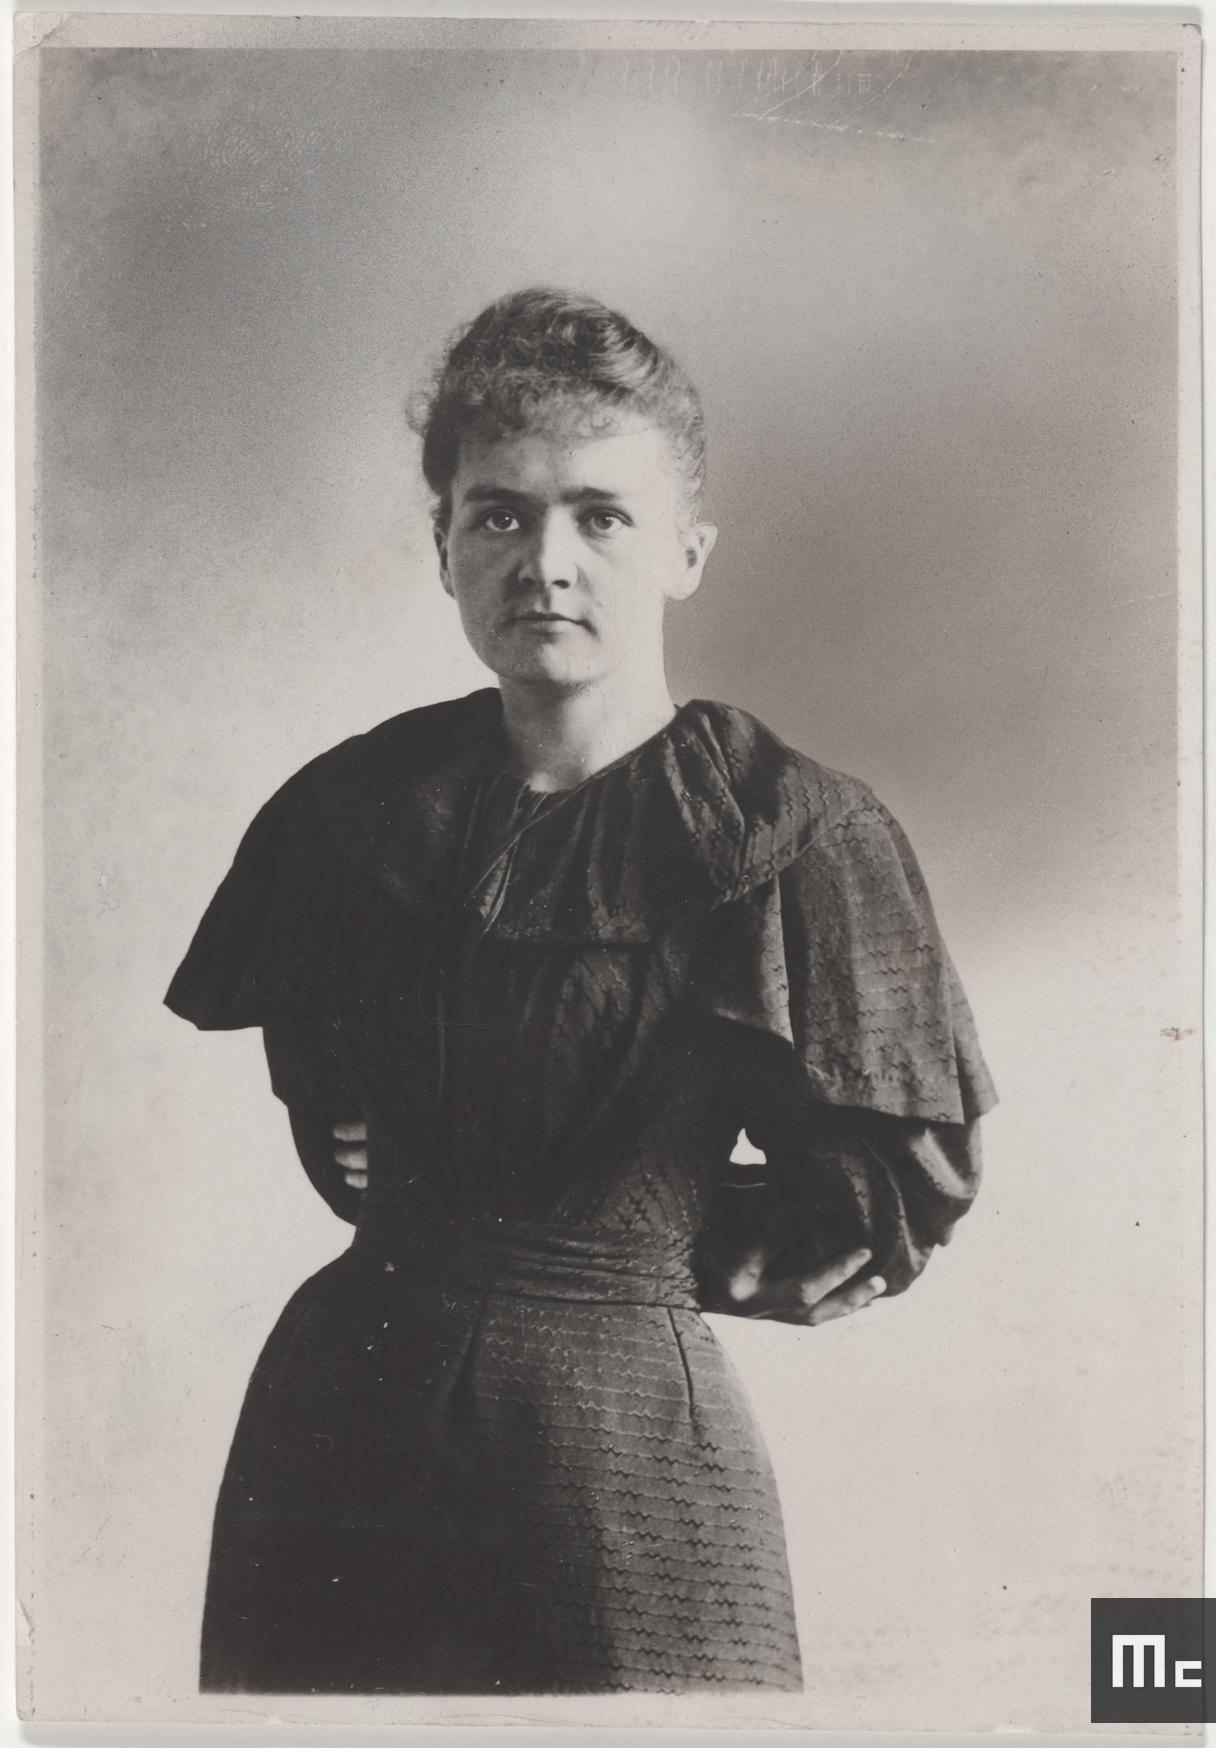 Marie Sklodowska, student, in 1894 (Source: Musée Curie; coll. ACJC)